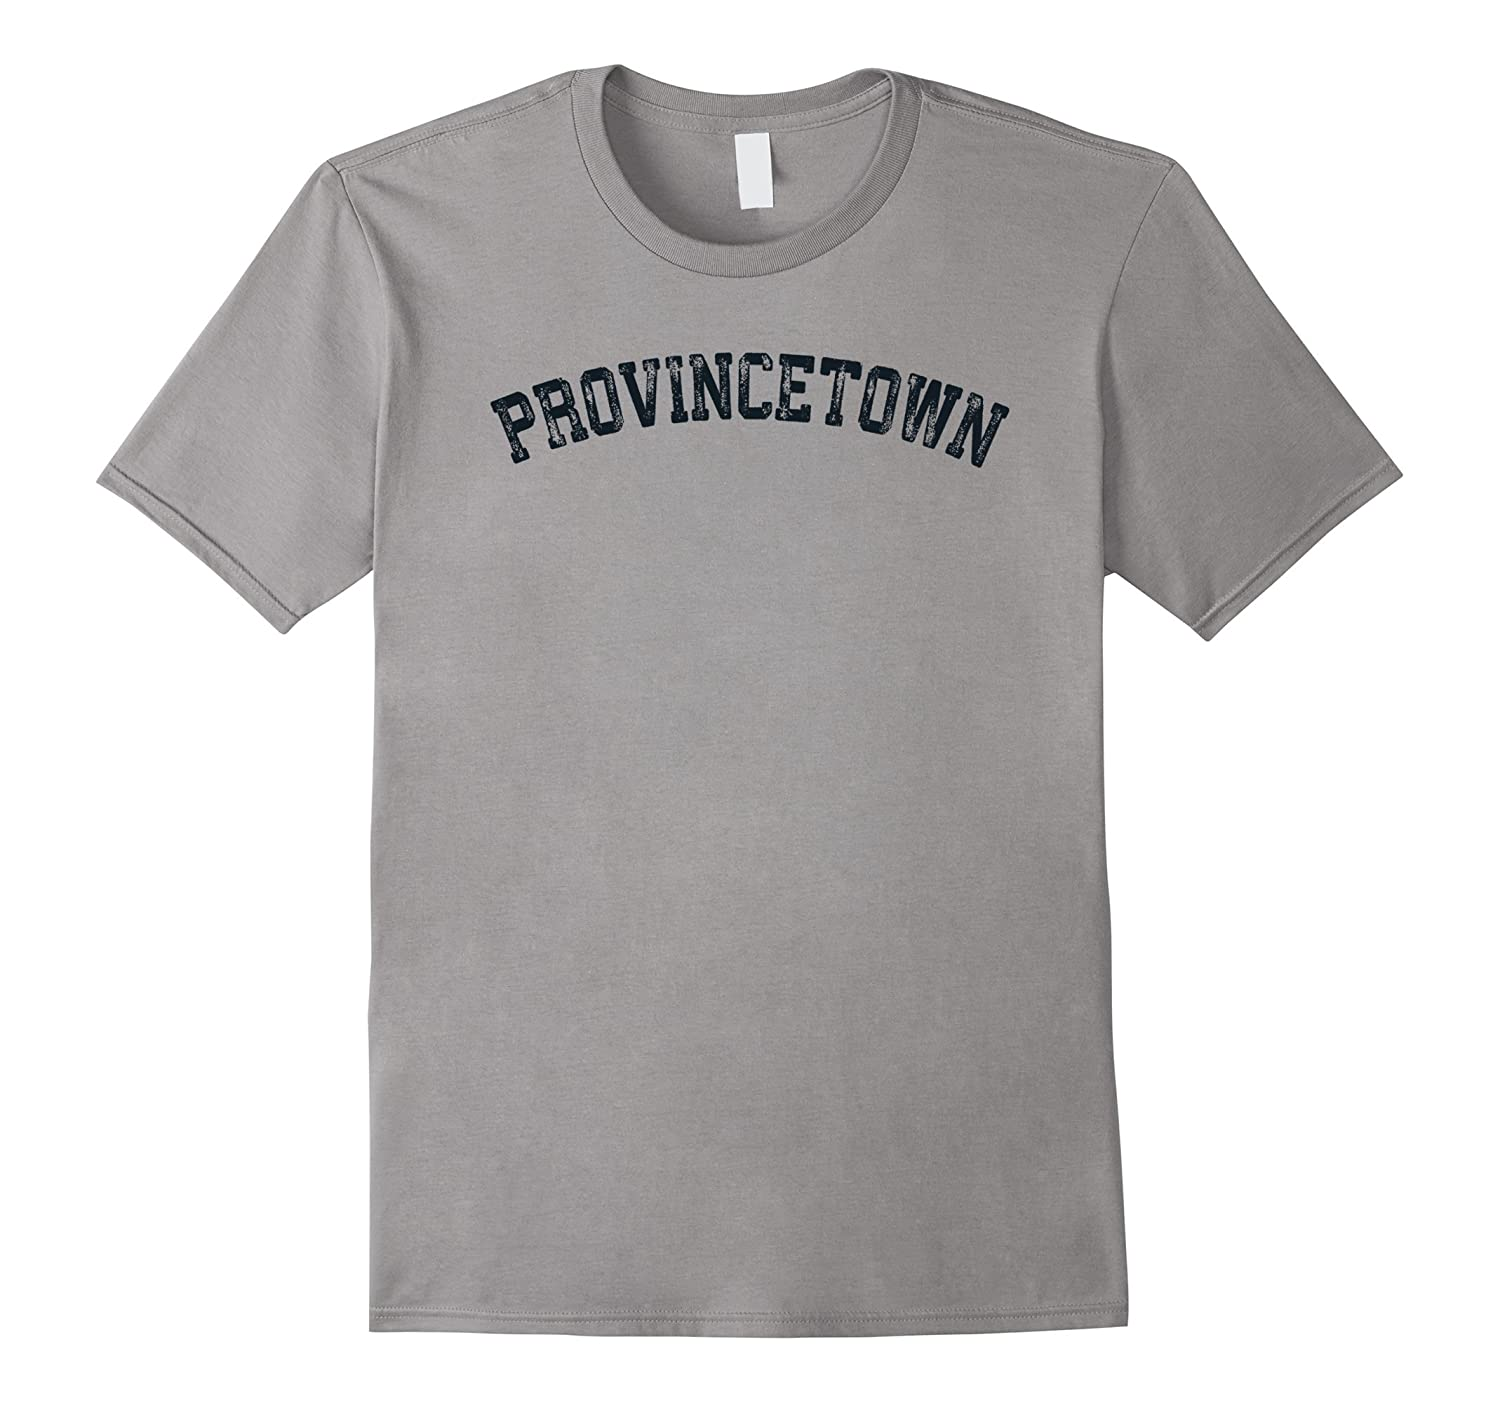 Vintage Provincetown T Shirt Distressed Old Retro Sports Tee-TH